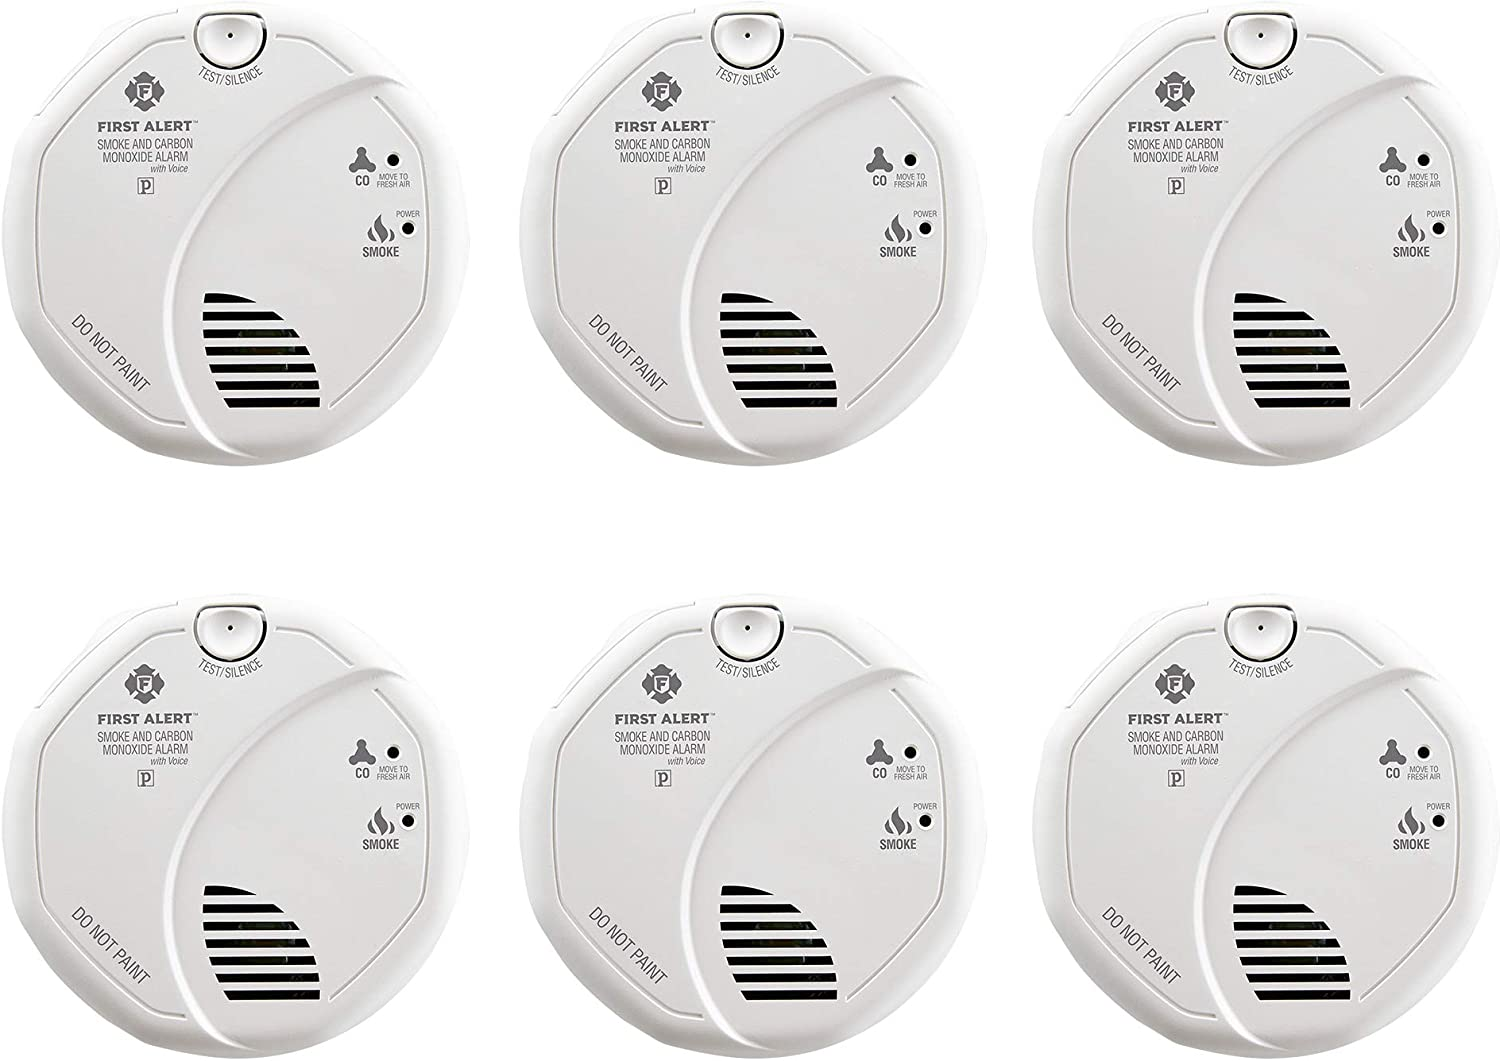 First Alert BRK SC7010BV-6 Hardwired Smoke and Carbon Monoxide (CO) Detector with Photoelectric Sensor, 6-Pack